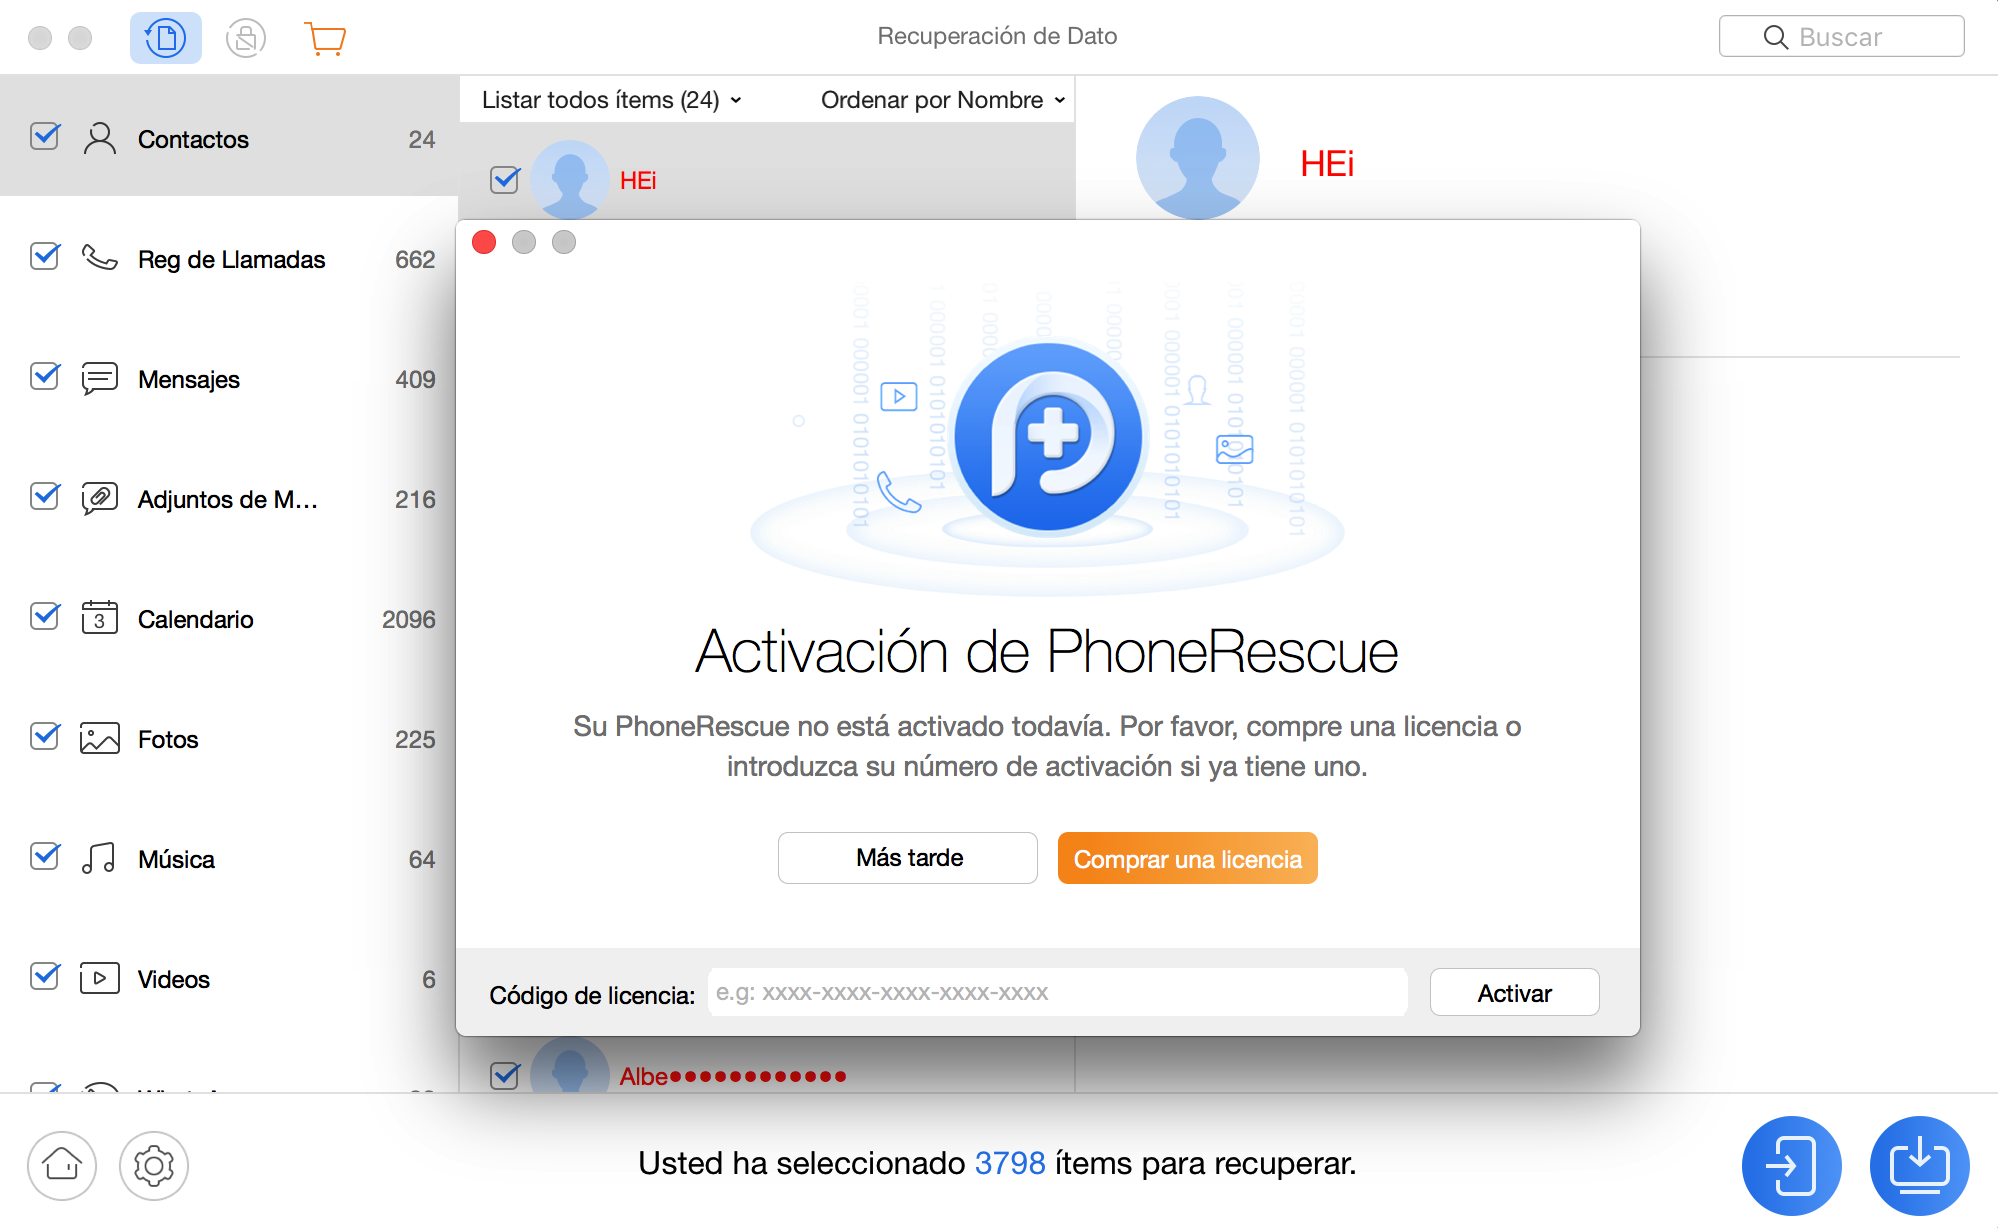 Registering PhoneRescue for HUAWEI